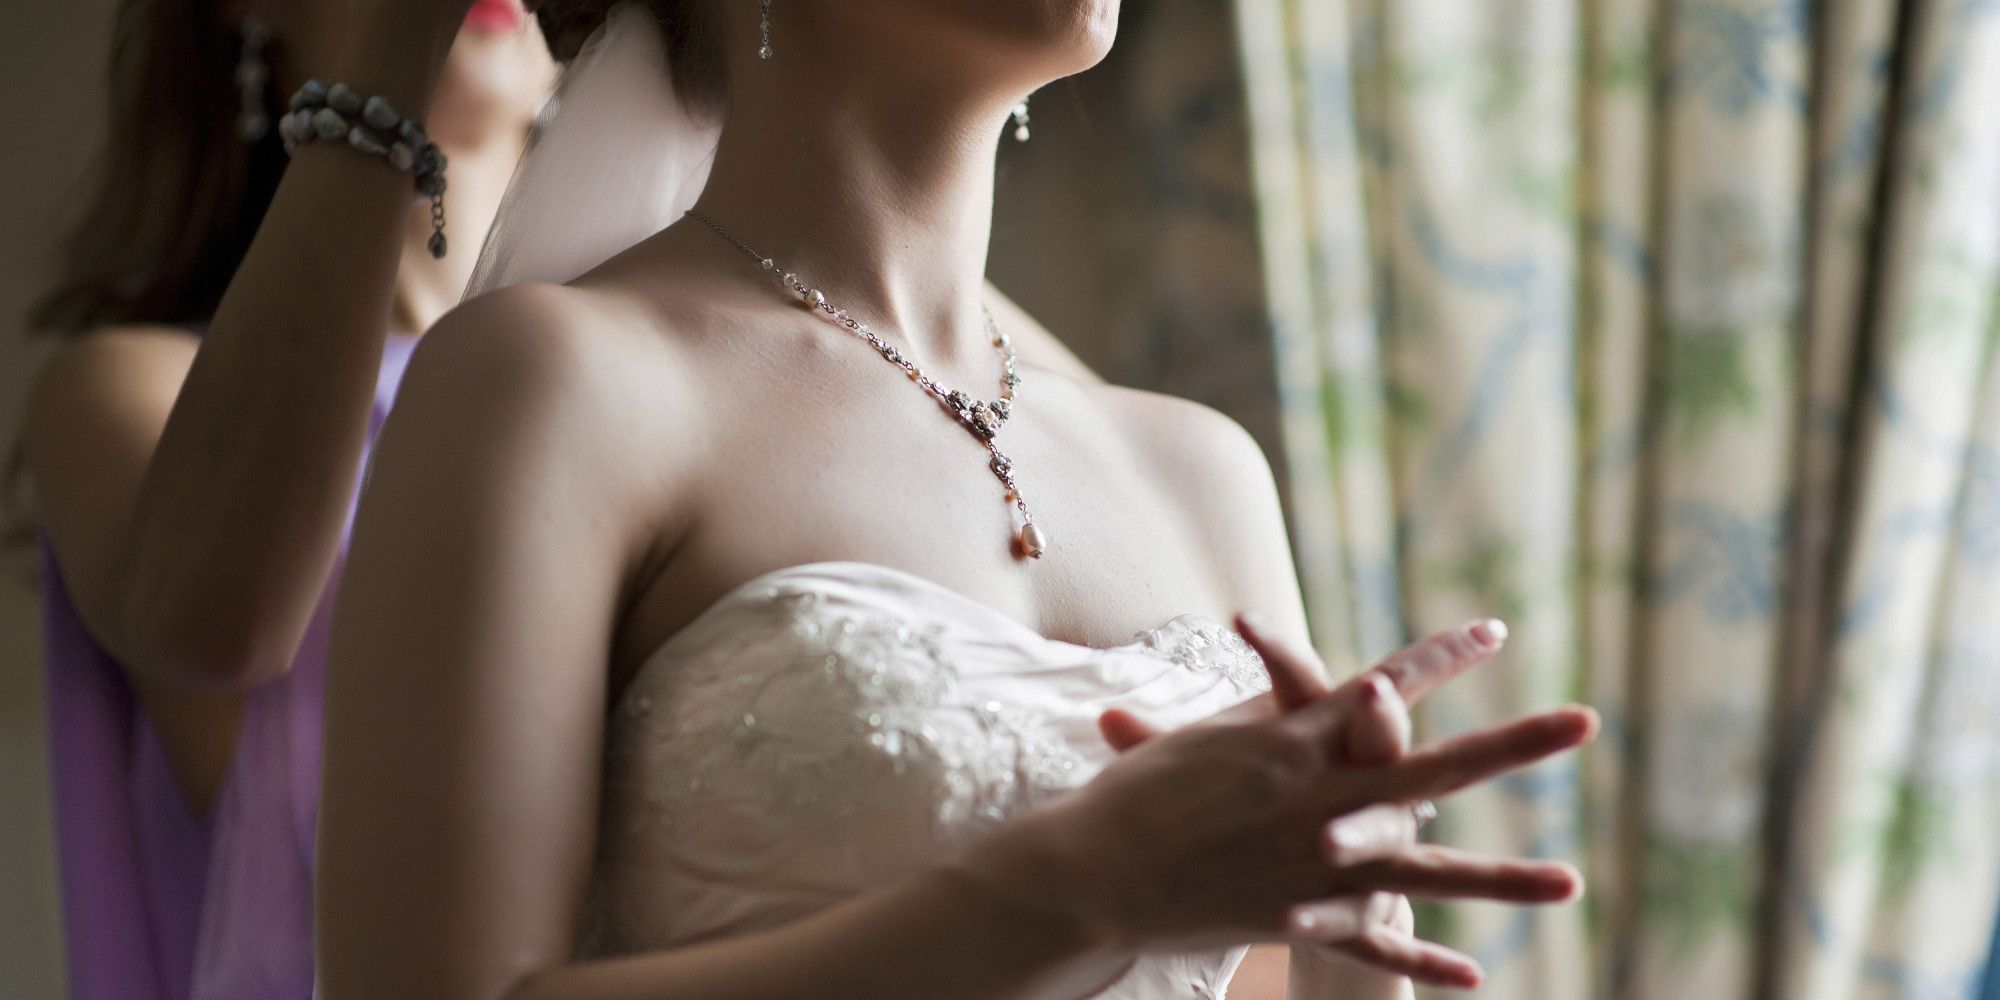 Gift For Best Friend On Wedding Day: An Open Letter To My Best Friend On Her Wedding Day